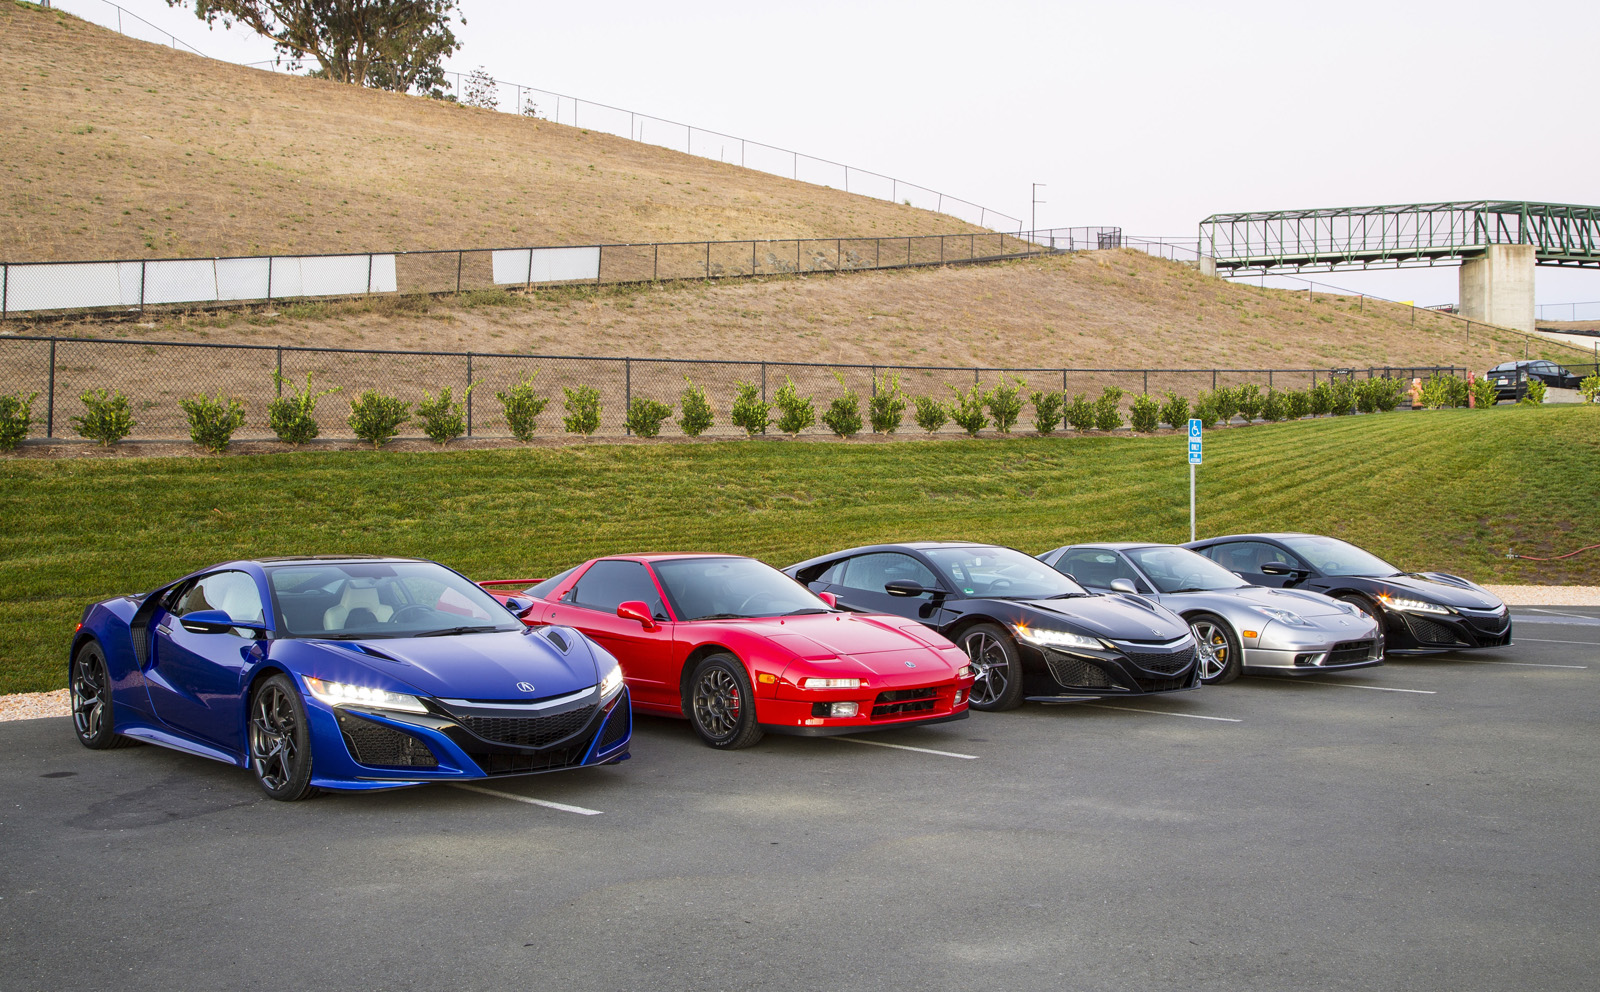 Top Things You Need To Know About The Acura NSX - Acura golf clubs